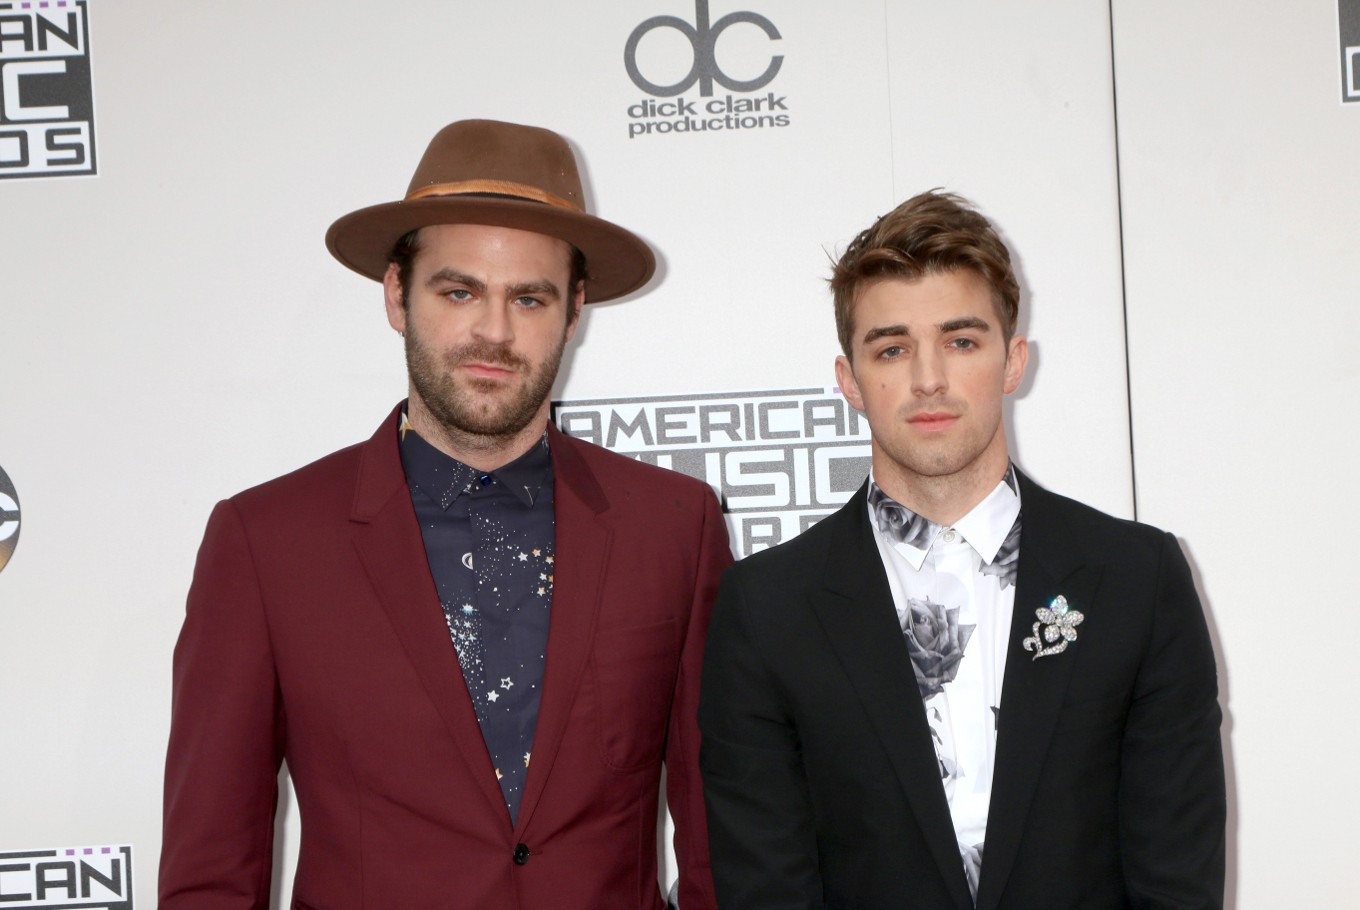 The Chainsmokers to perform in Jakarta in March